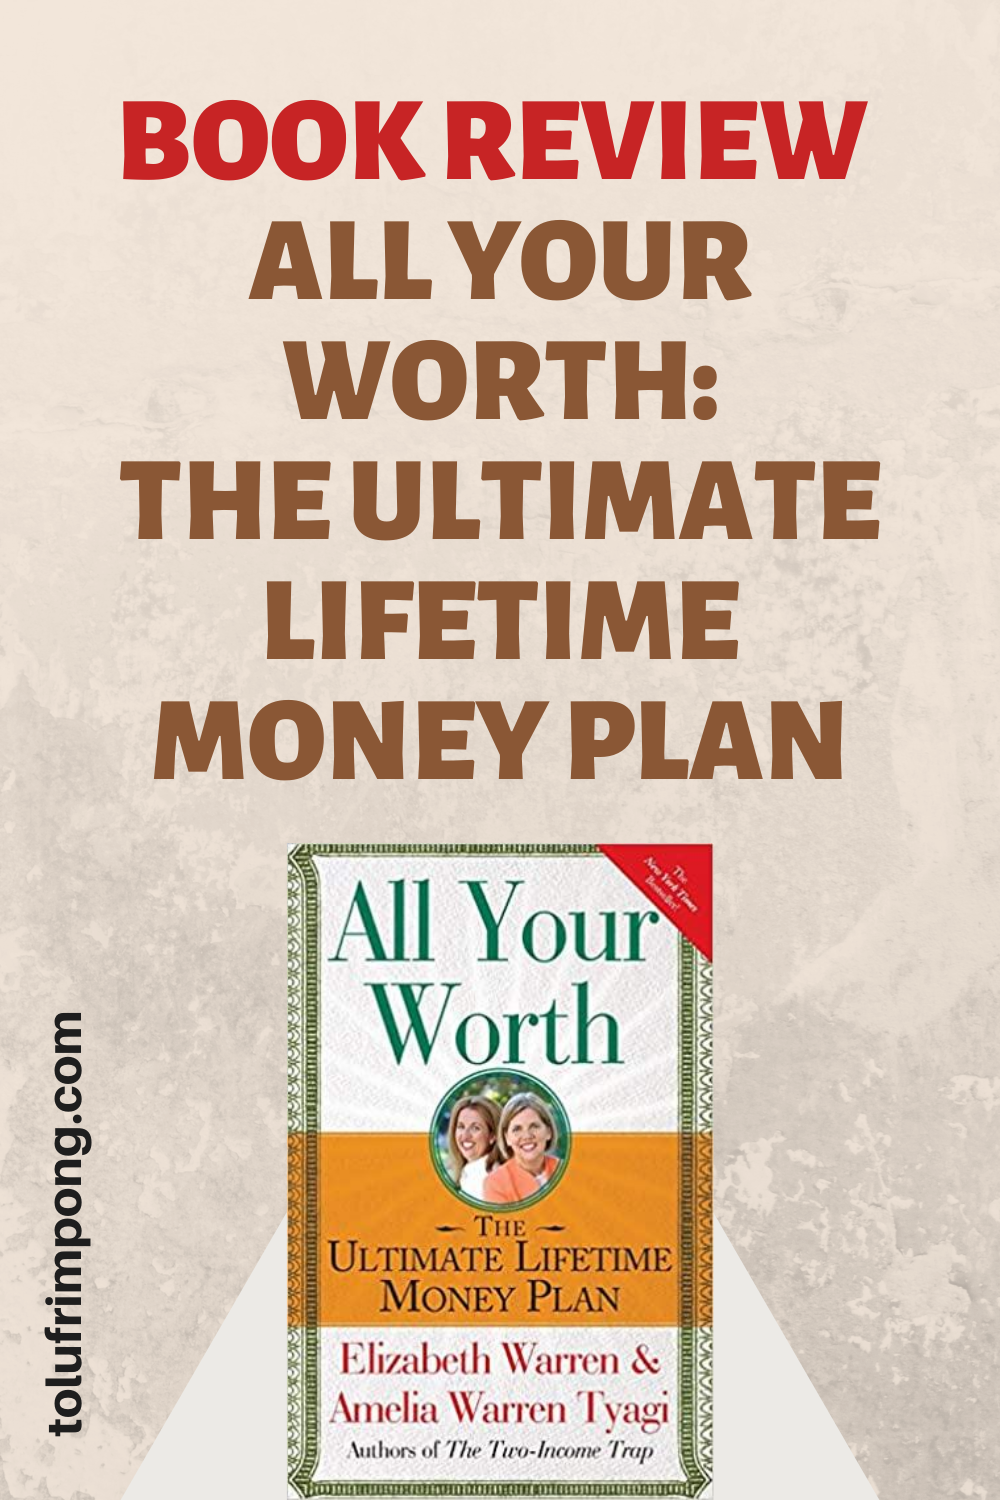 BOOK REIVEW - ALL YOUR WORTH